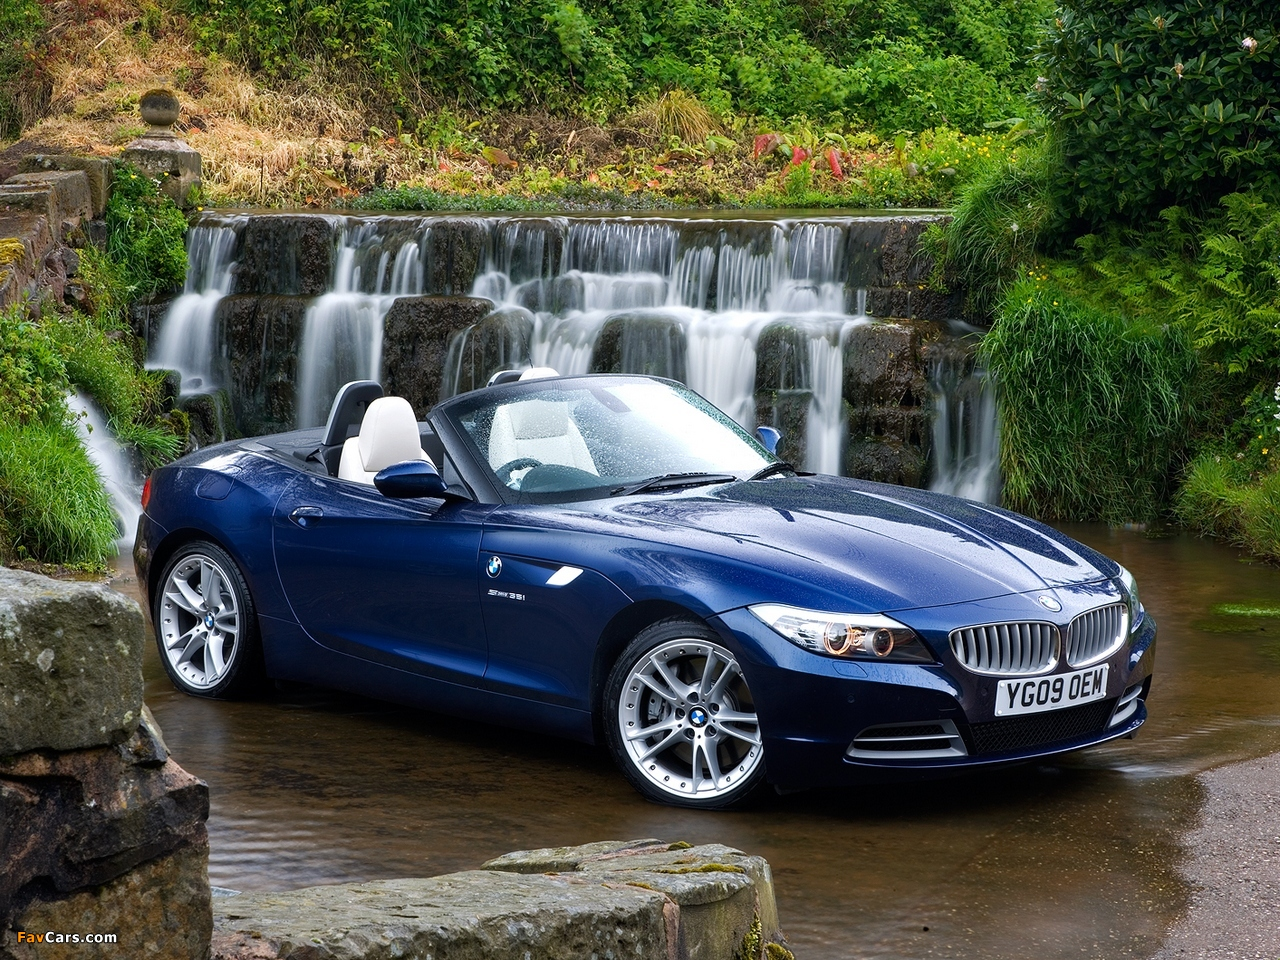 Bmw Z4 Sdrive35i Roadster Uk Spec E89 2009 12 Photos 1280x960